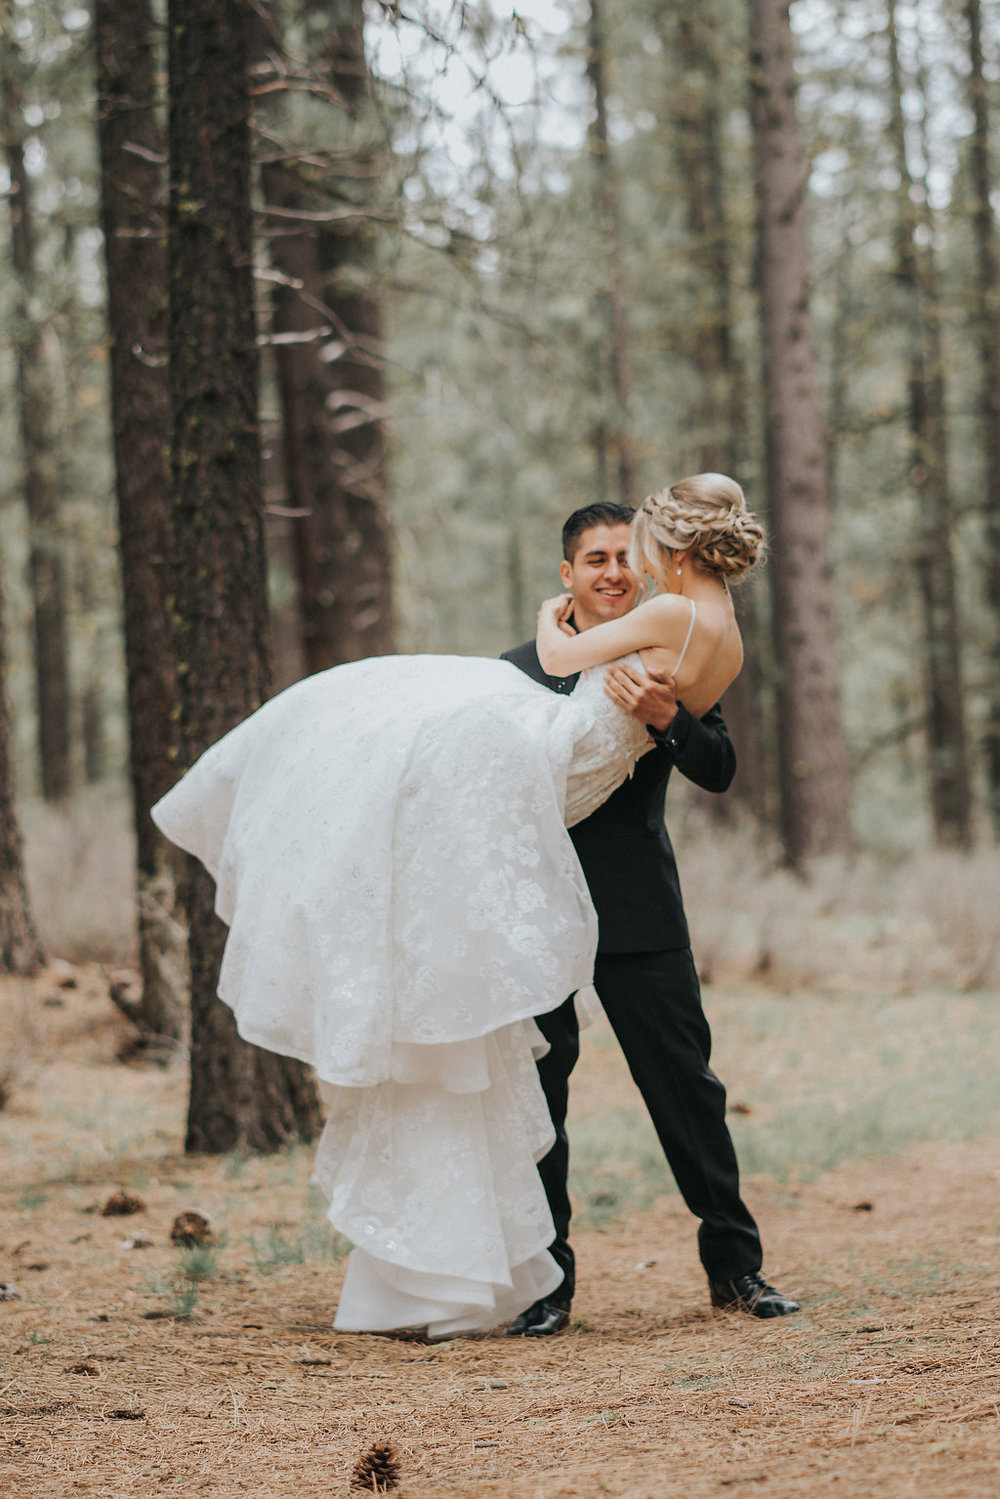 Perfect Glam Adventure Wedding in the Redwoods